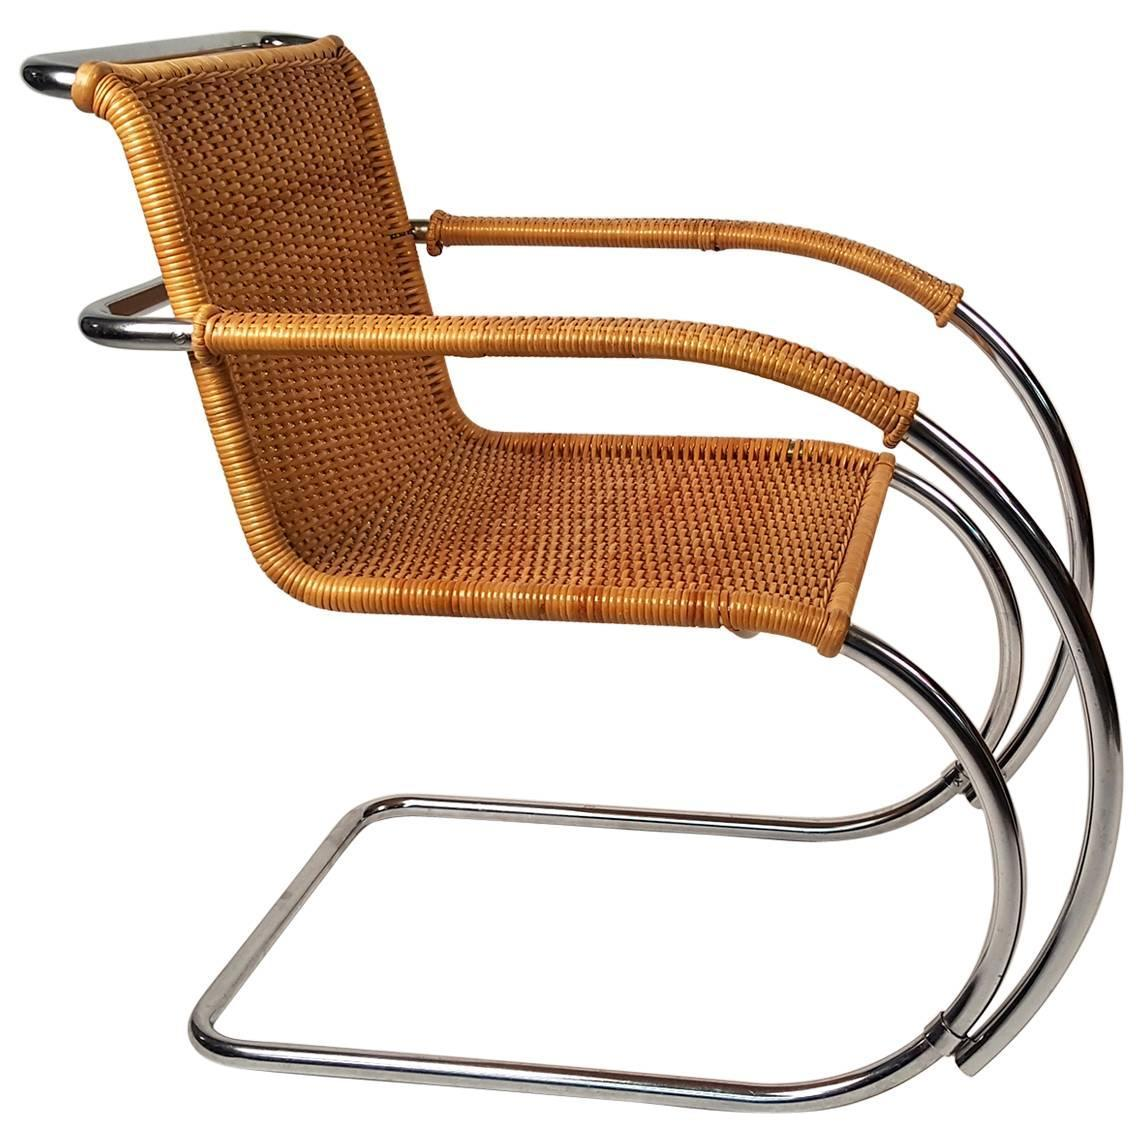 mr20 lounge chair by ludwig mies van der rohe for sale at 1stdibs. Black Bedroom Furniture Sets. Home Design Ideas